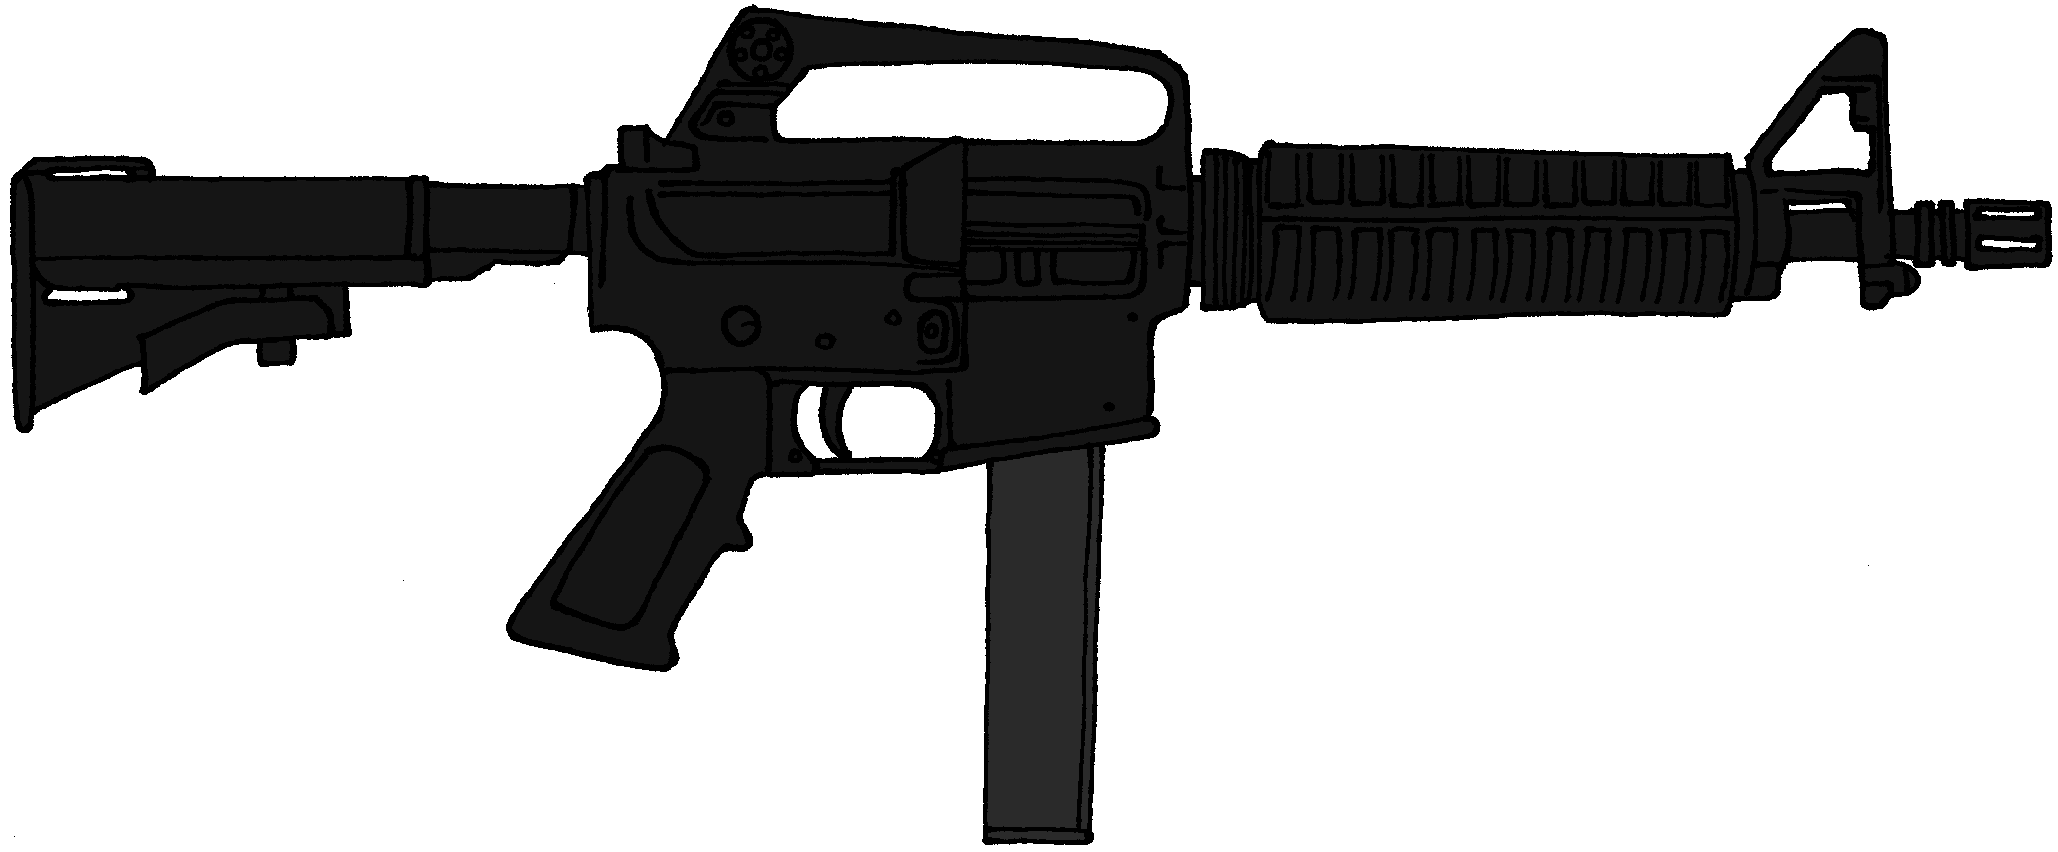 For sale trade imi uzi carbine made in israel 9mm - Micro Uzi 9mm Find Our Speedloader Now Http Www Amazon Com Shops Raeind Rae 714 For Colt And Uzi Smg Speedloader Pinterest Guns